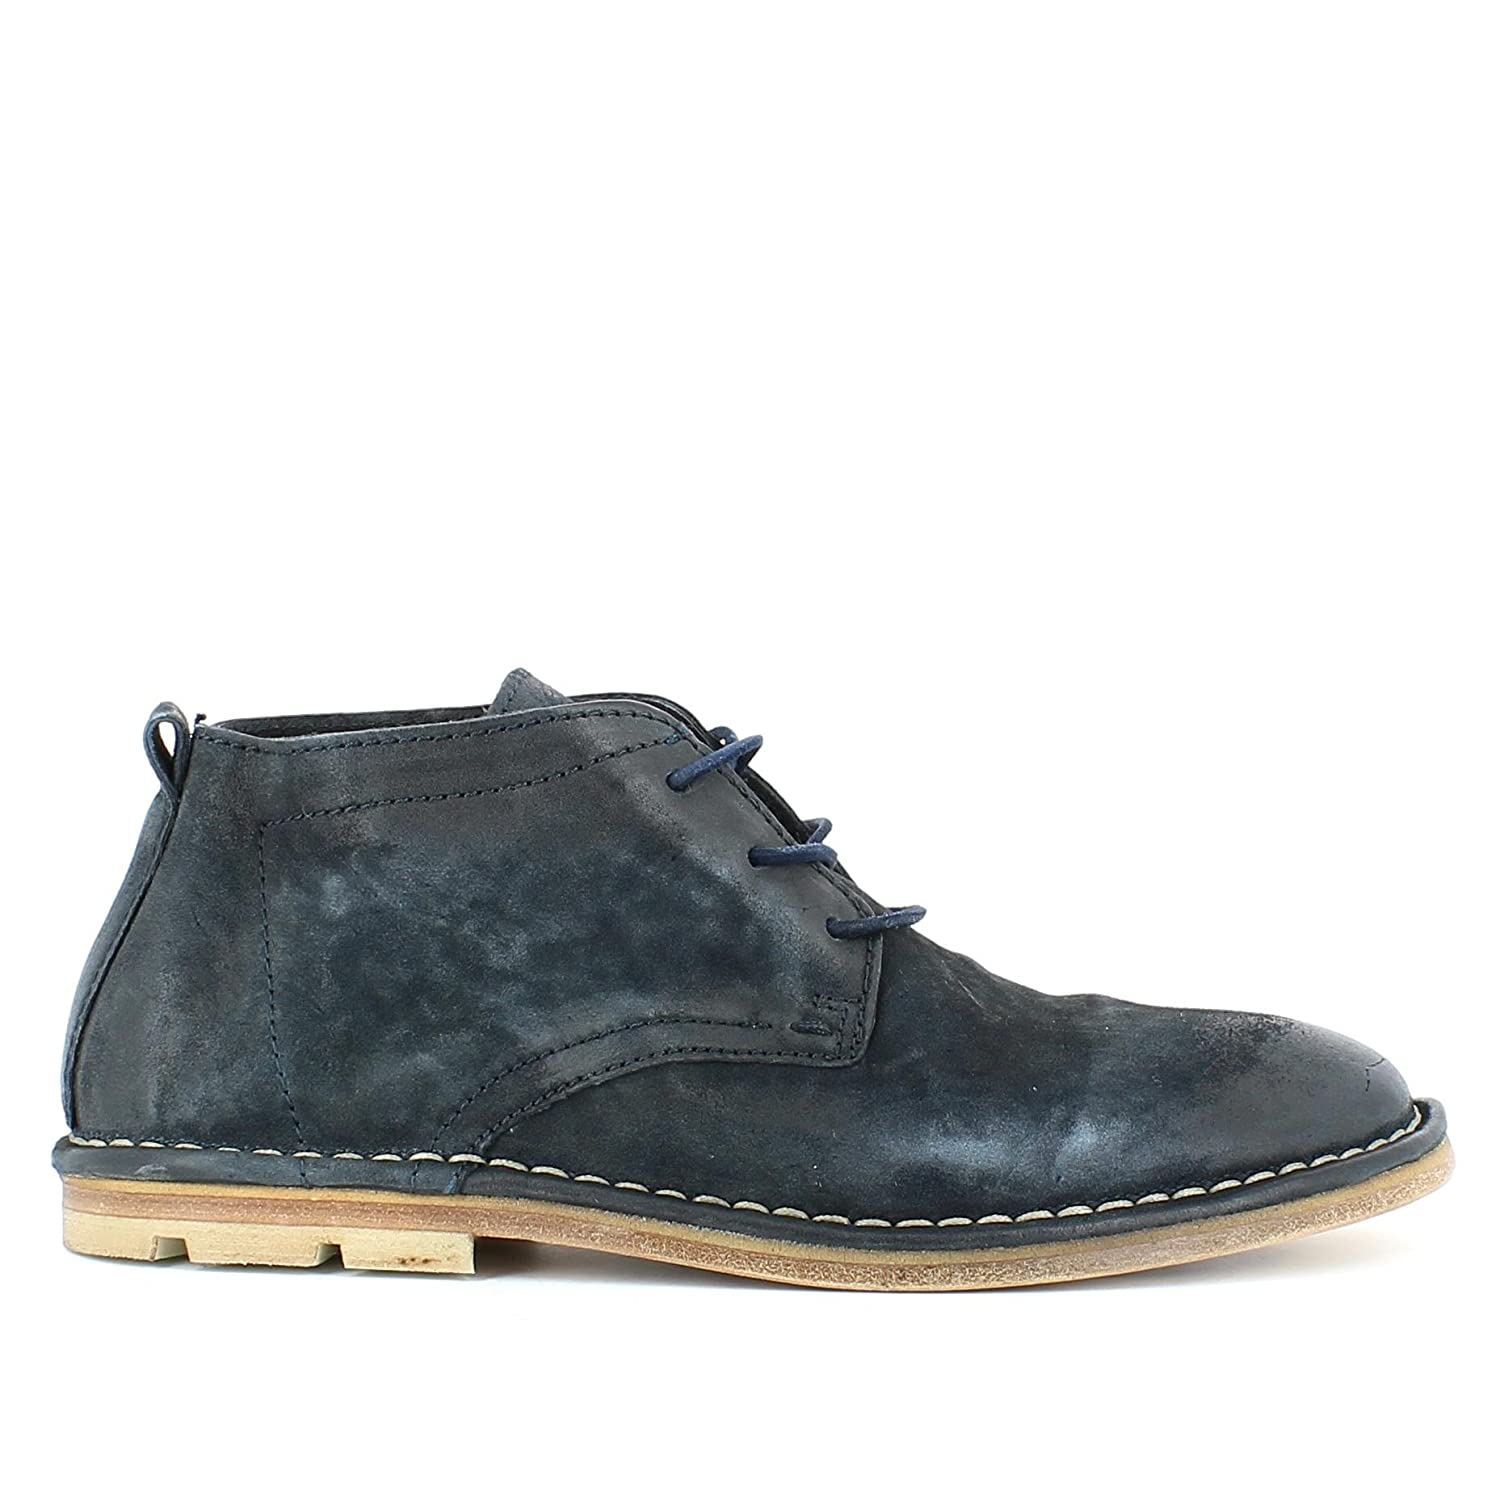 A.S.98 Stiefelette Lebowsky 458205 101 Blu Airstep as98S 98 Stiefelette Lebowsky 458205 101 Blu